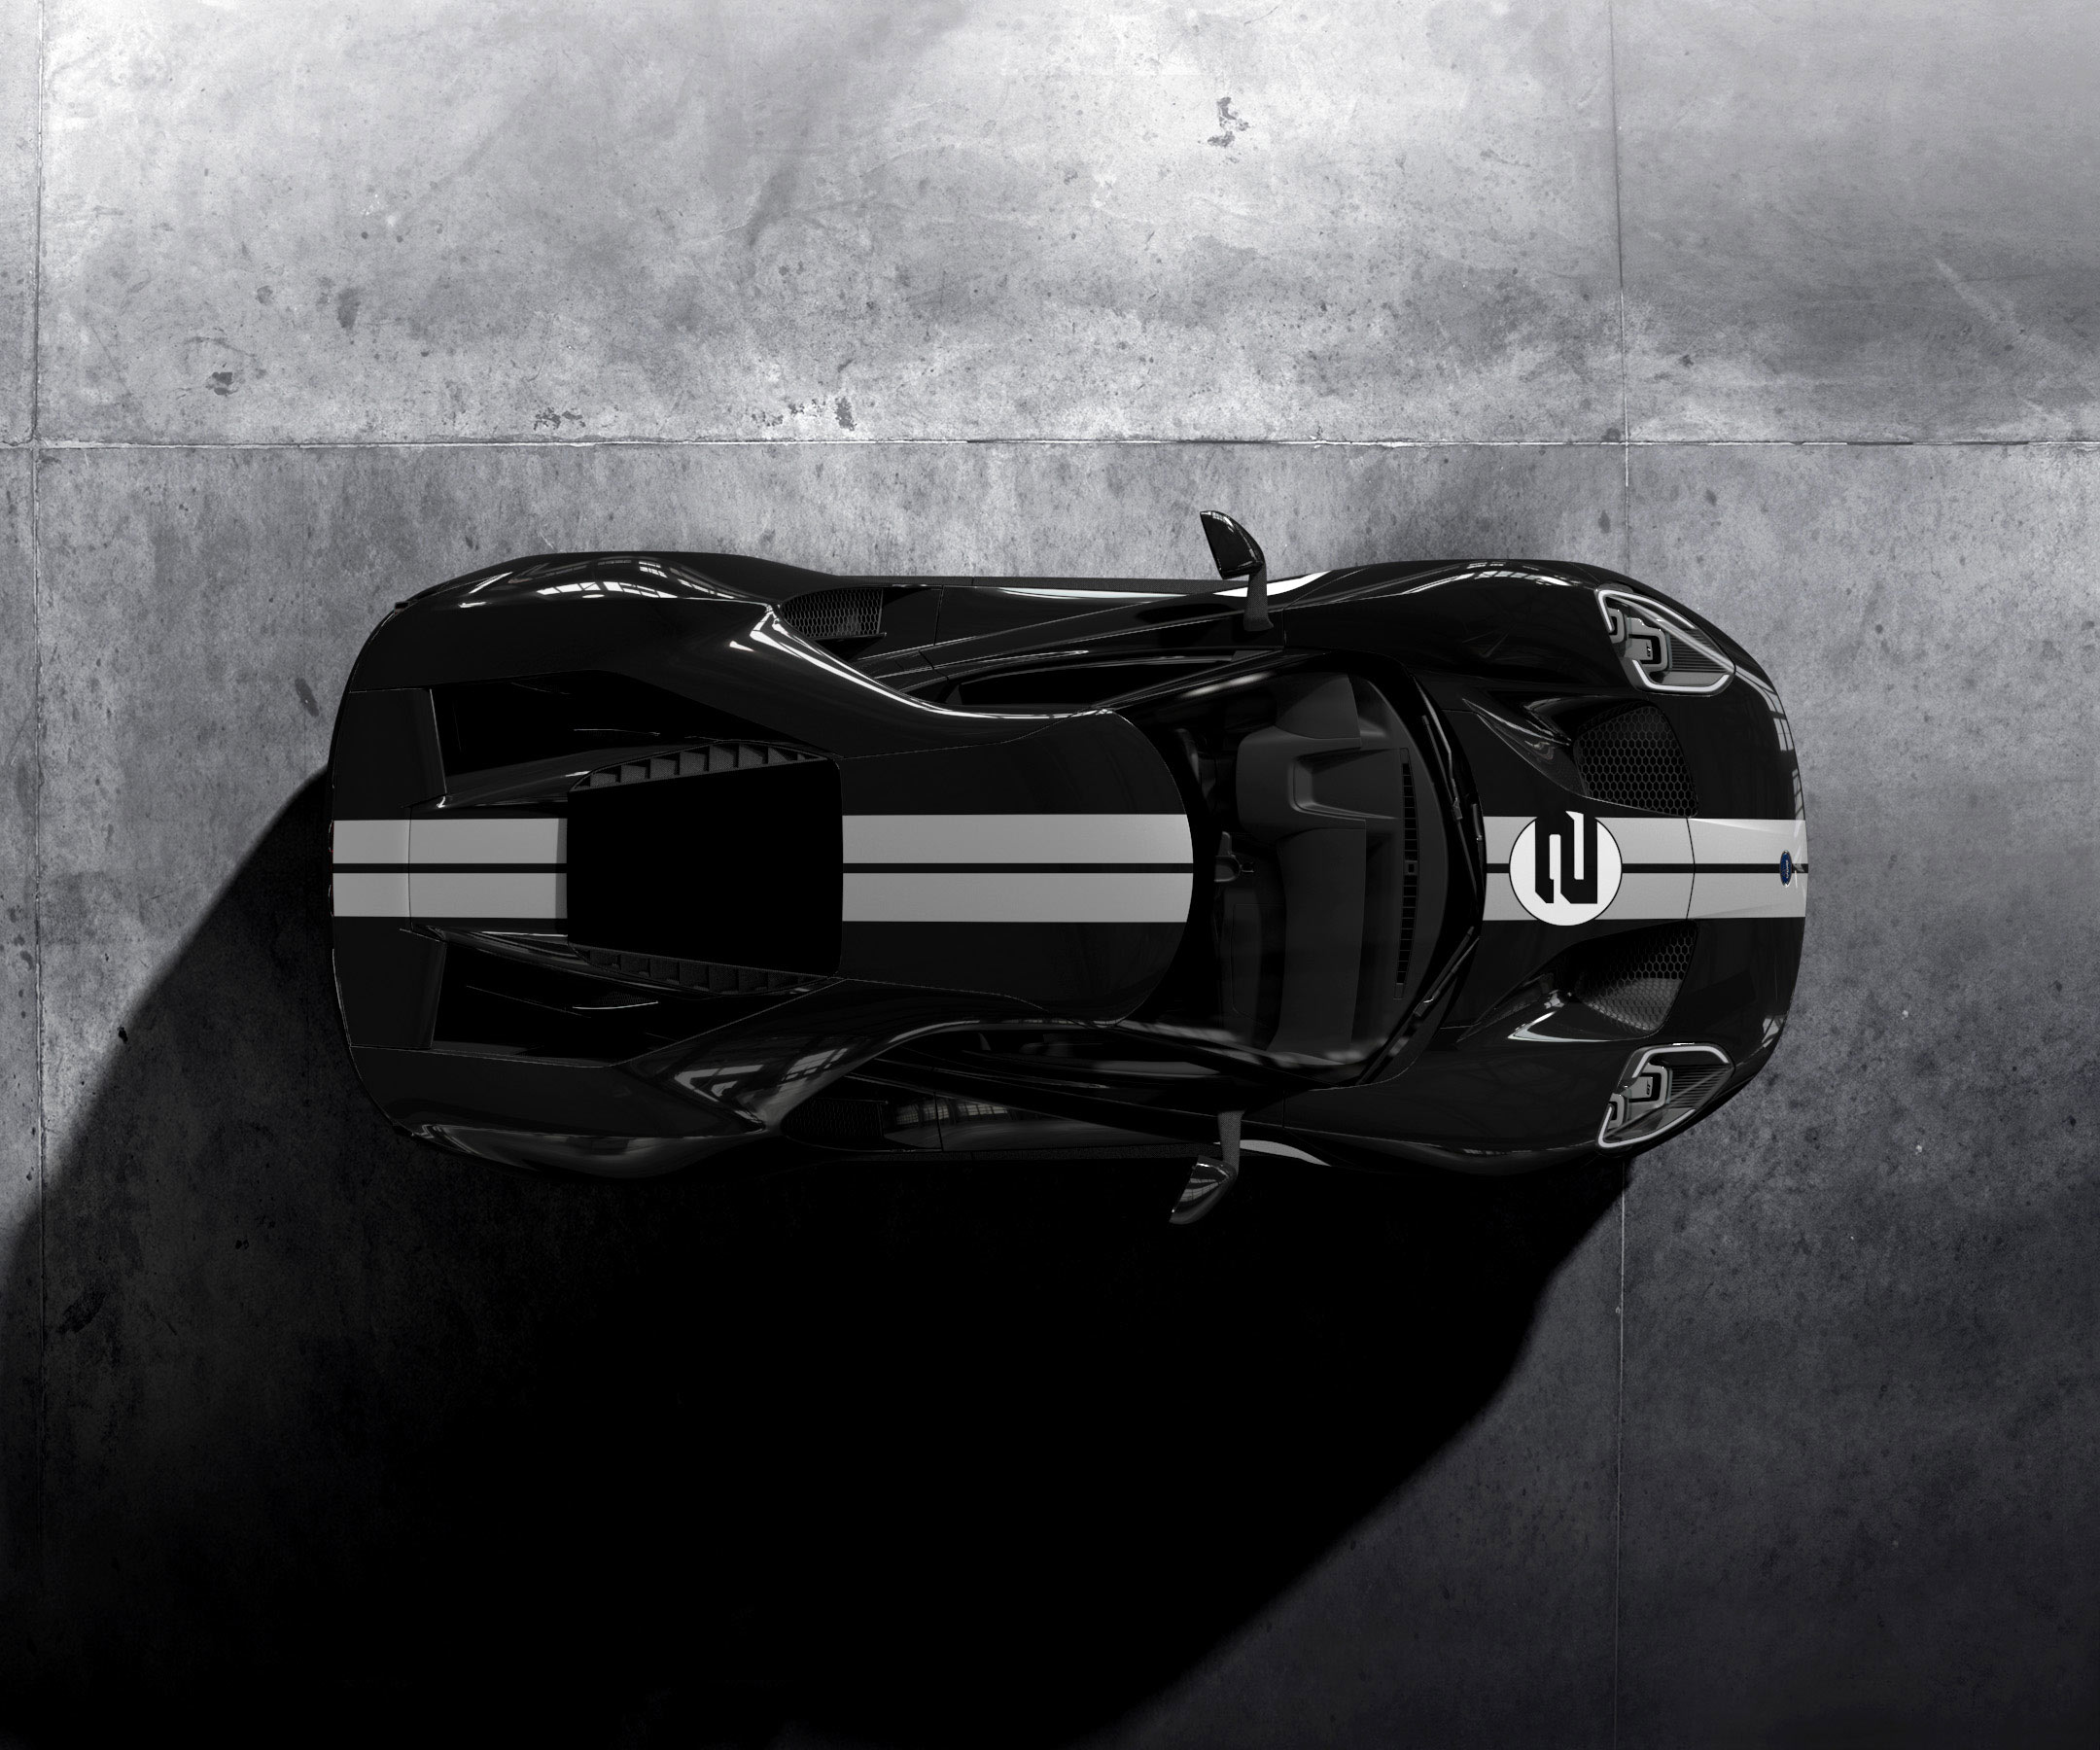 Ford GT 2016 - livery 1966 Heritage Edition - top / toit